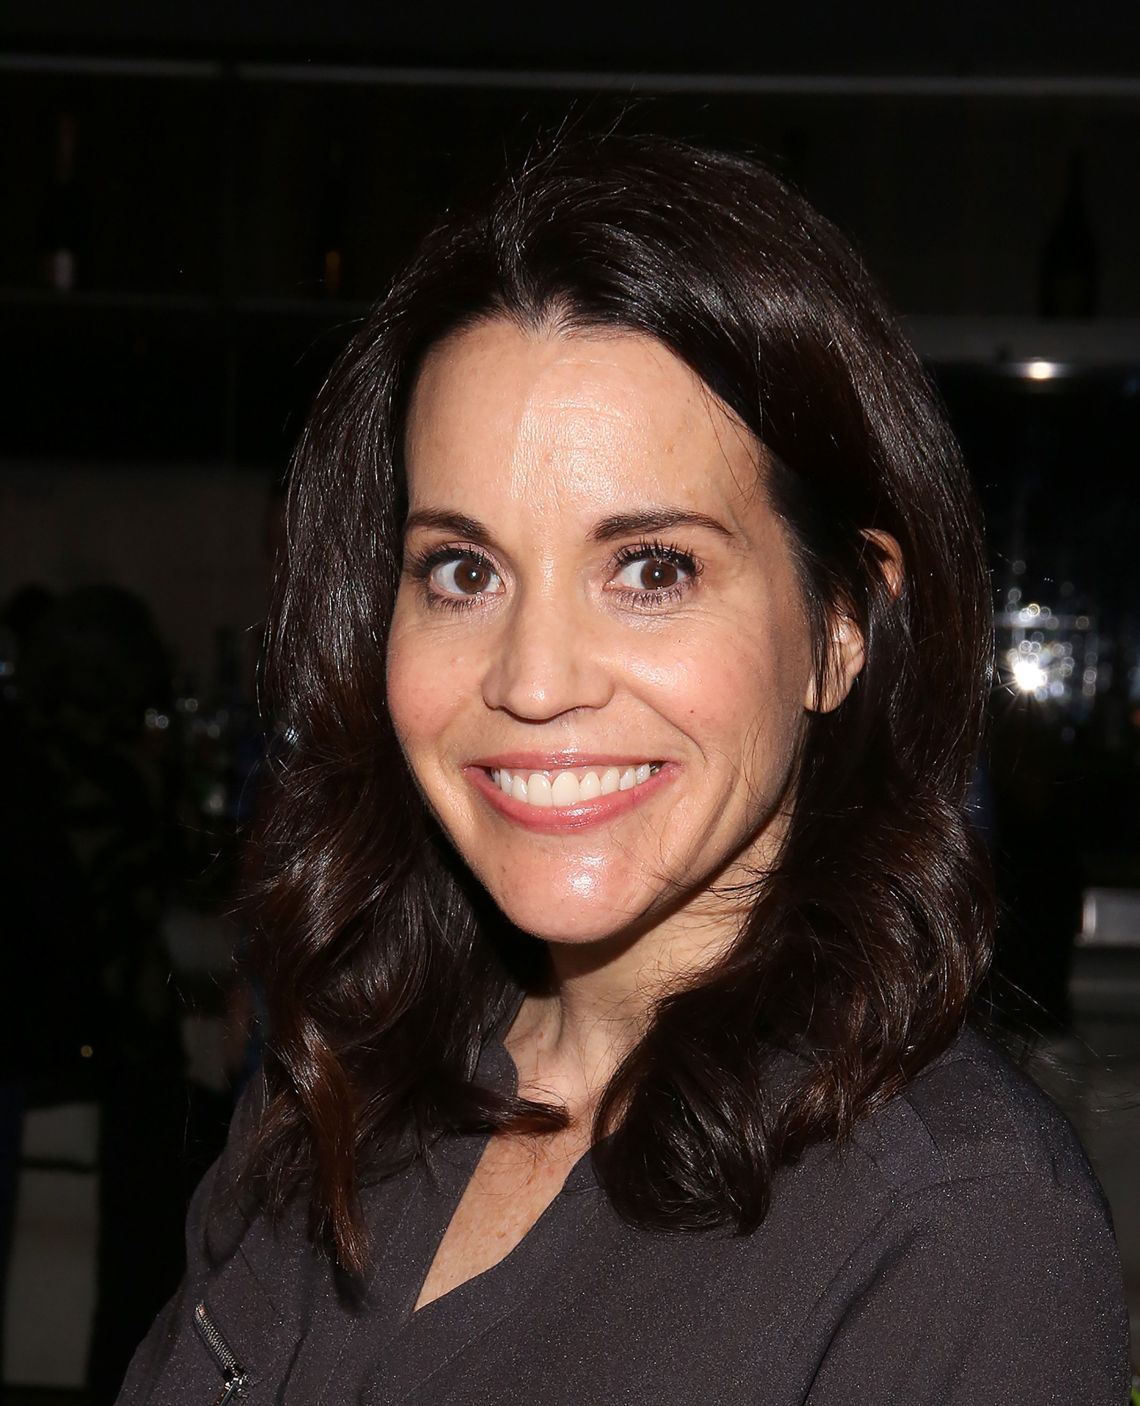 Jenna made her last appearance as Libby in 1999, and went on to appear in a number of US TV movies, as well as having guest roles in 'ER', 'Dharma & Greg', 'Cold Case' 'Ghost Whisperer' and 'Bones'.She also launched a stage career, playing Nessarose in the first North American tour of musical 'Wicked' in 2006, before transferring to Broadway.